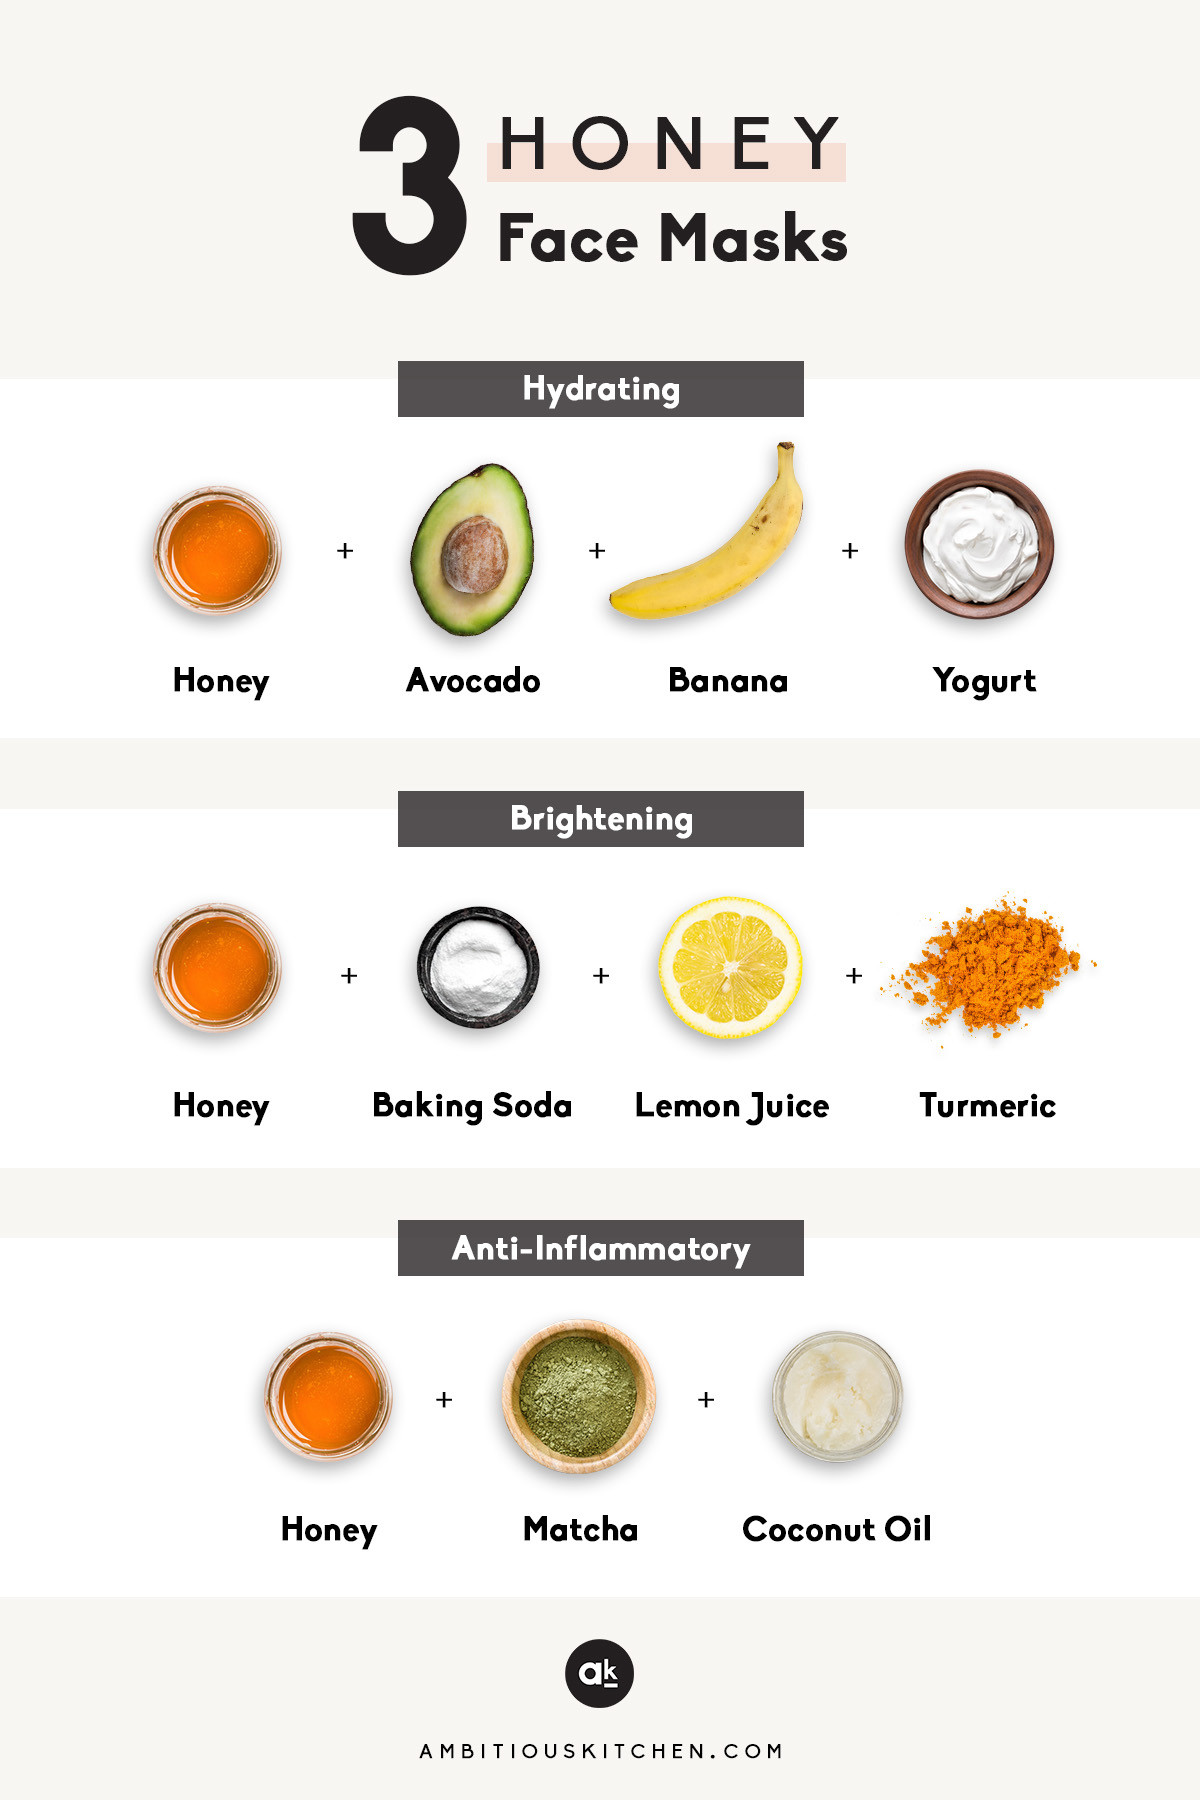 Best ideas about Face Masks DIY . Save or Pin 3 DIY Honey Face Masks video Now.